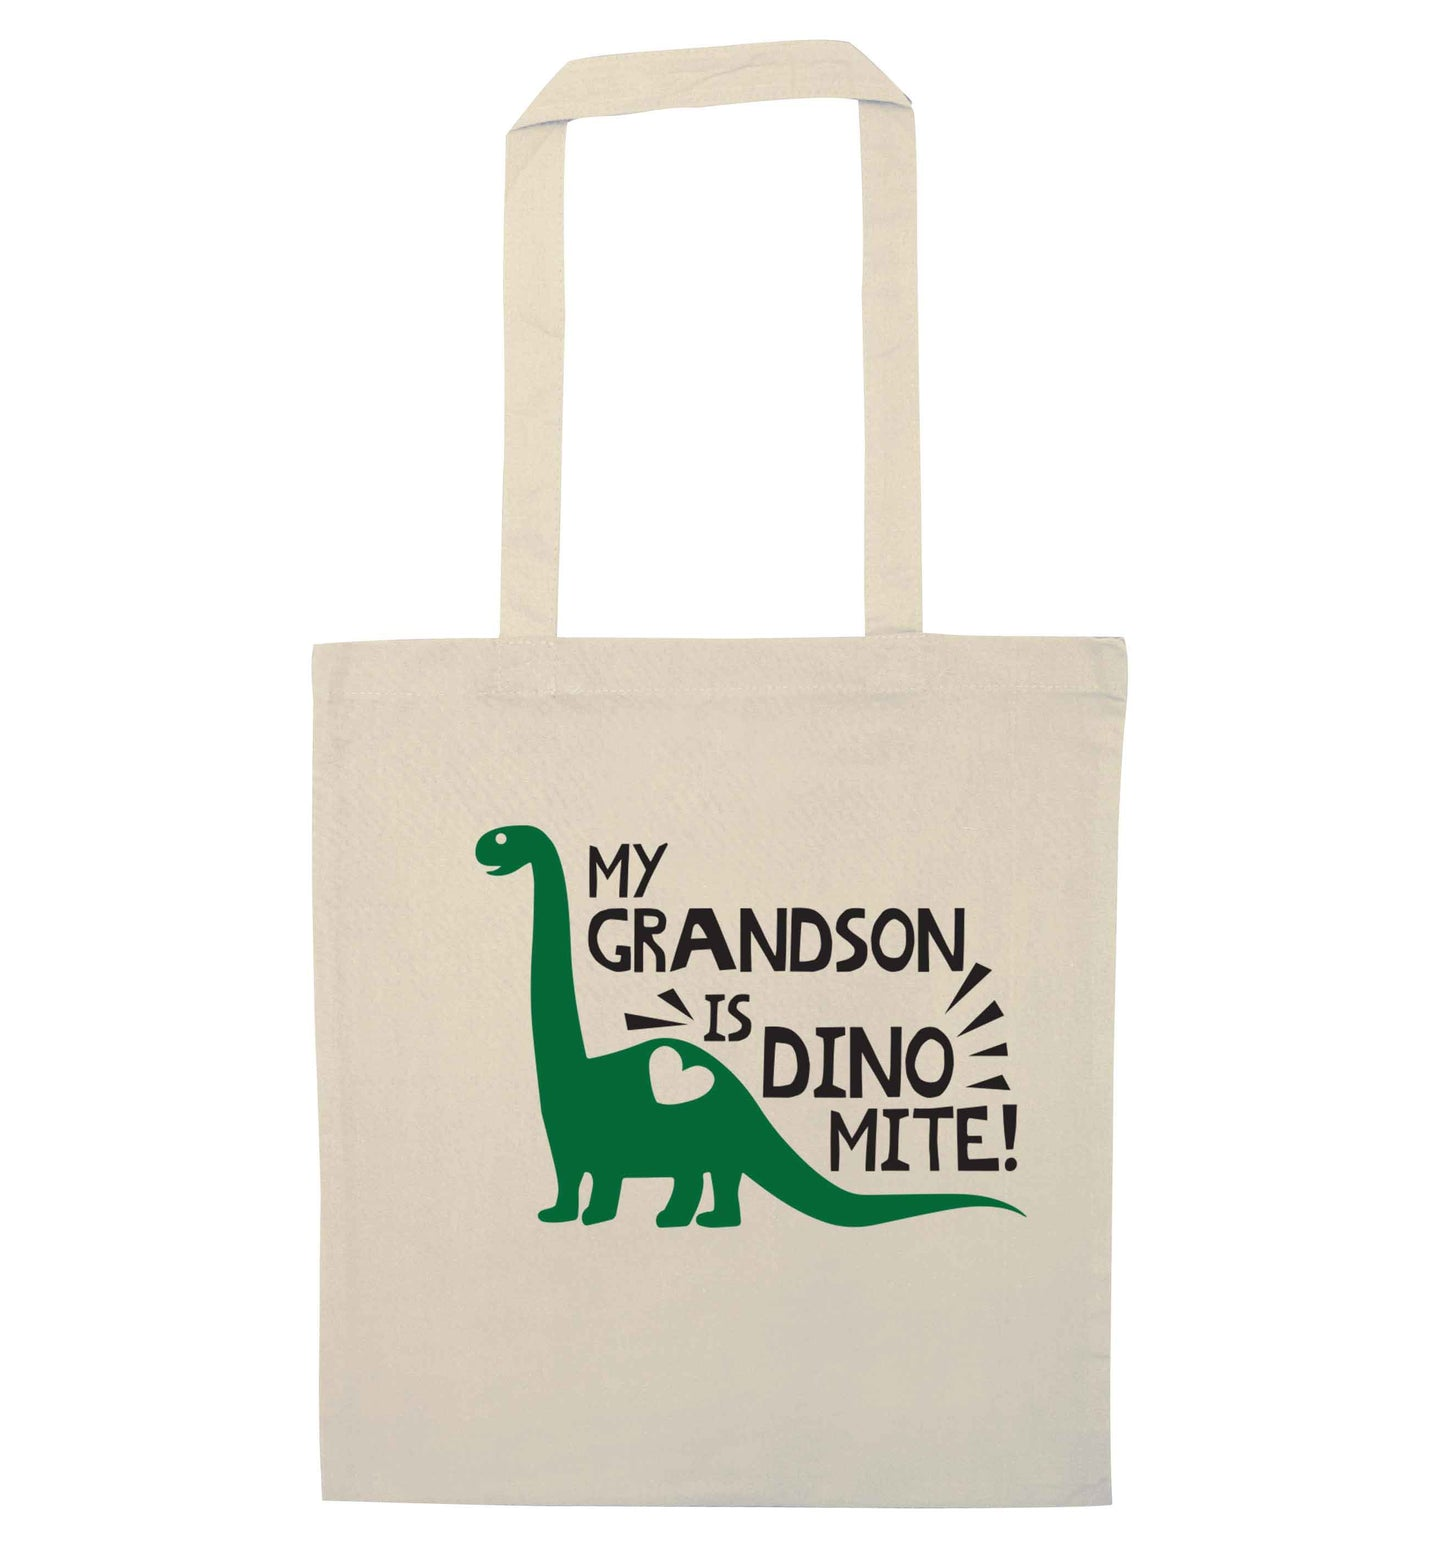 My grandson is dinomite! natural tote bag